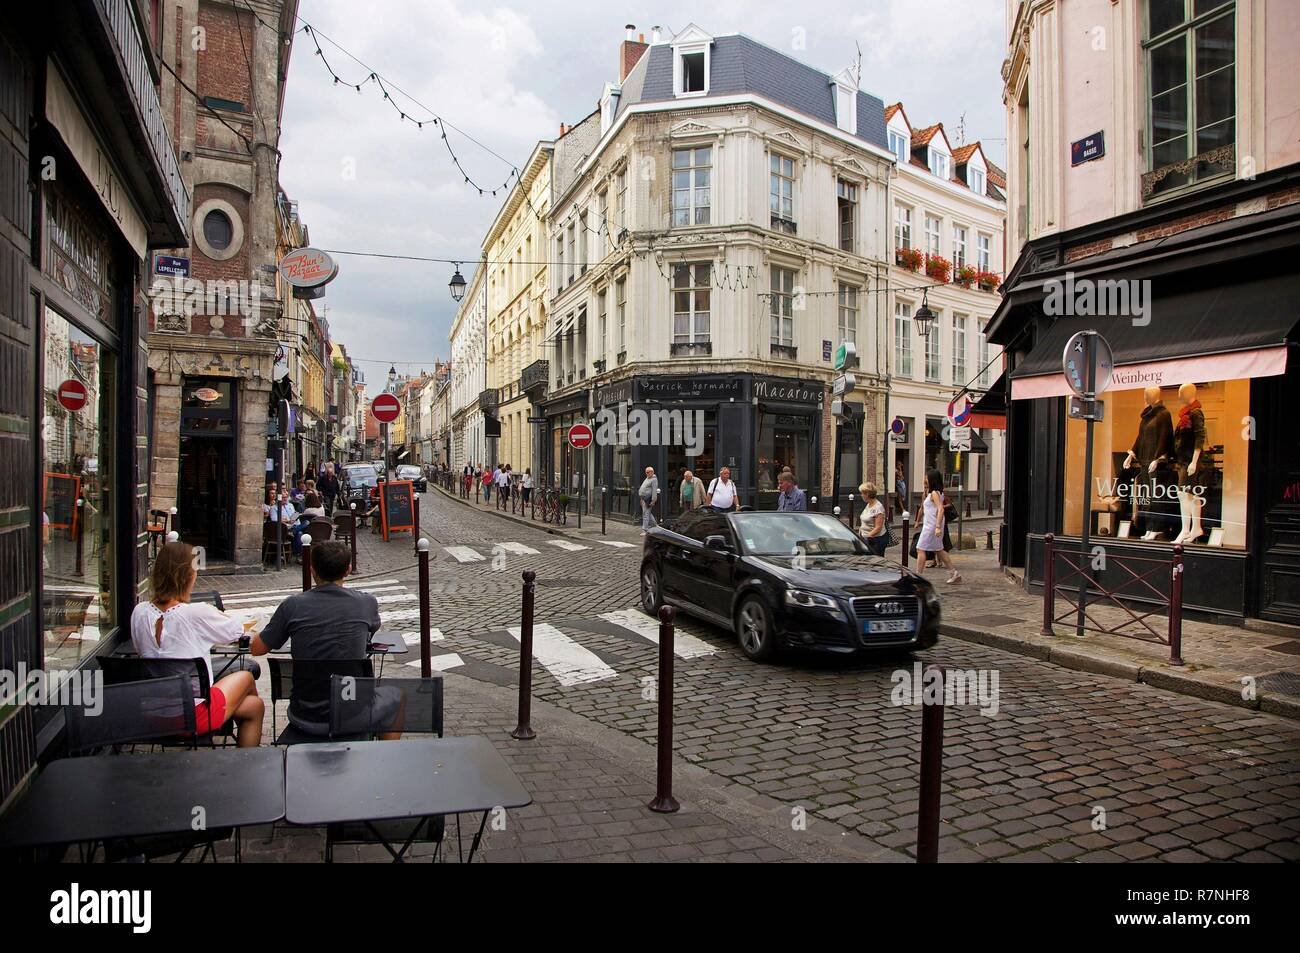 France Nord Lille Old Lille Cafe Terrace And Shops Of Basse Street Stock Photo Alamy